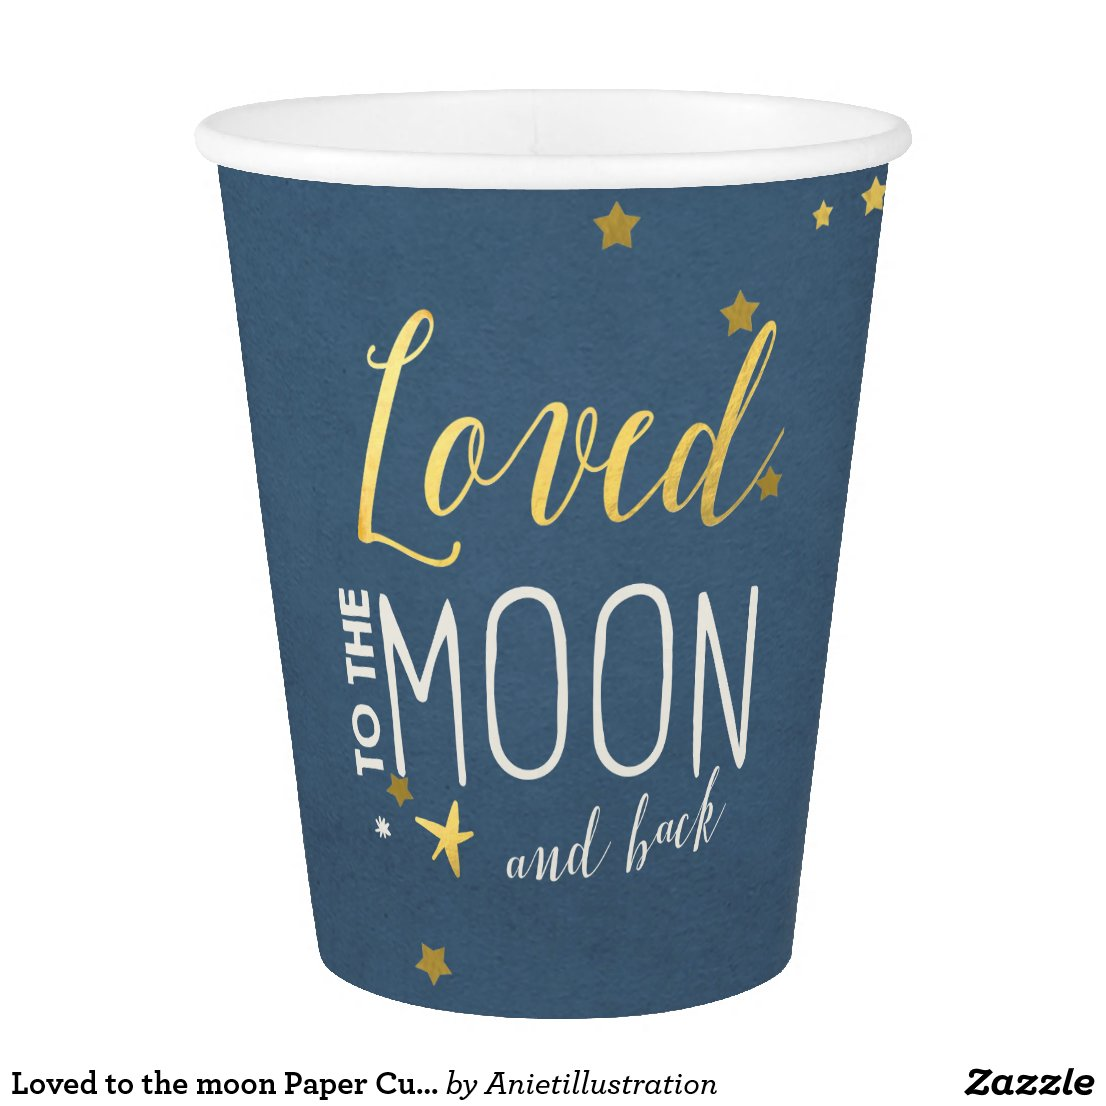 Loved to the moon Paper Cup Baby shower stars Gold